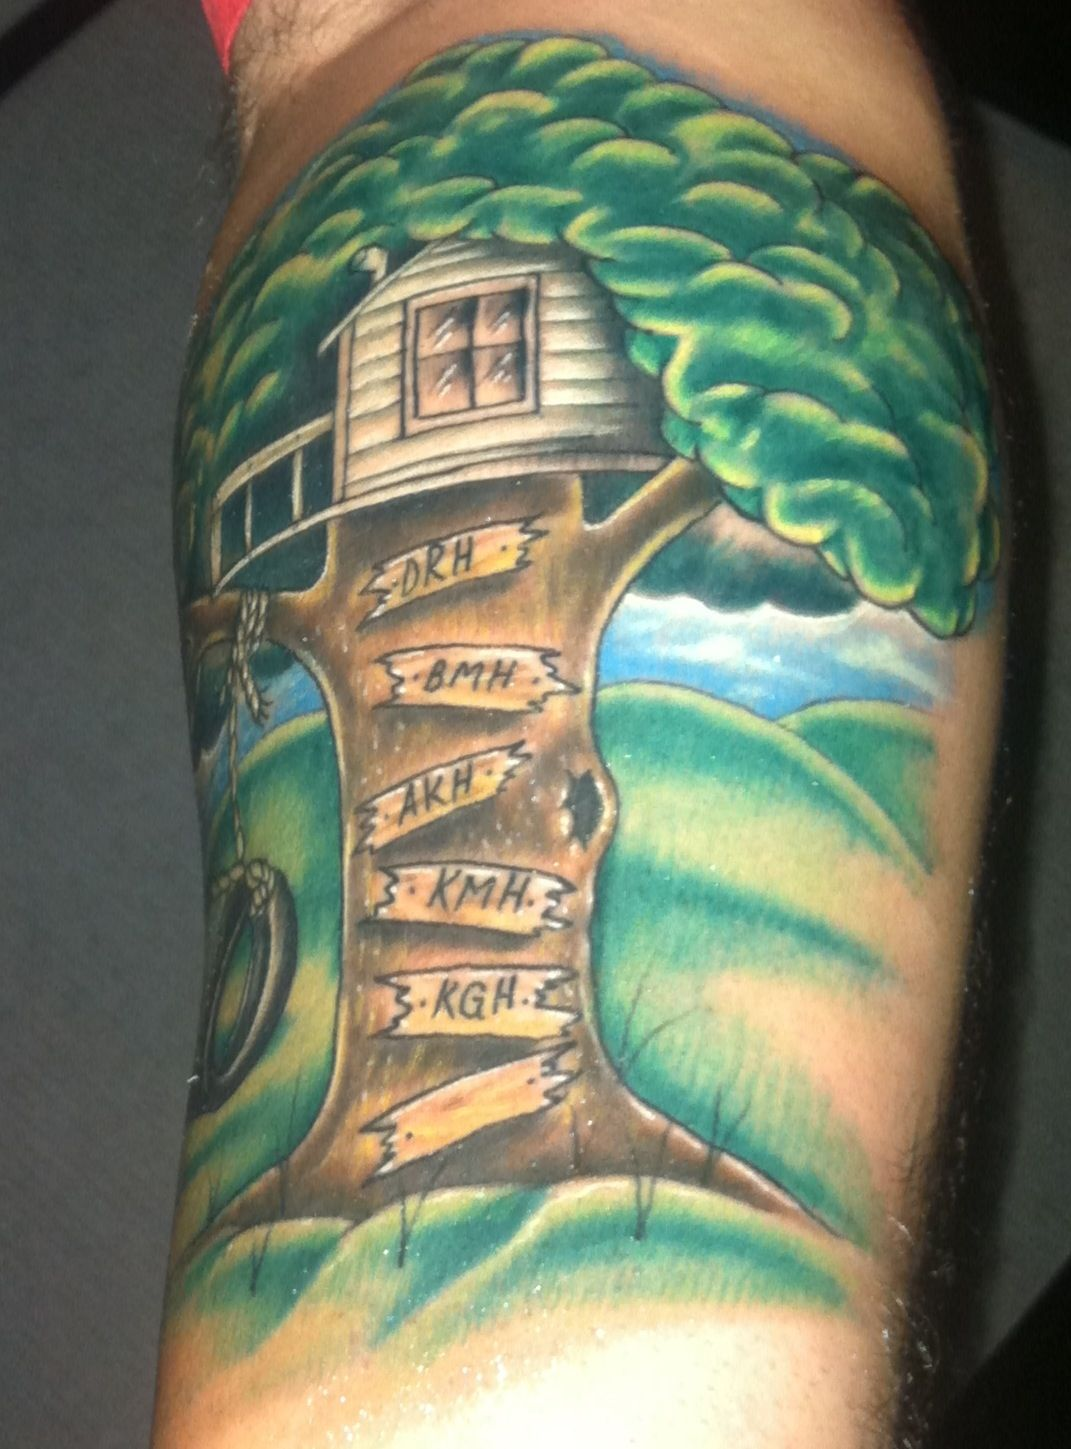 My Husbands Newest Tattoo With Kids Names Tattoos For Guys